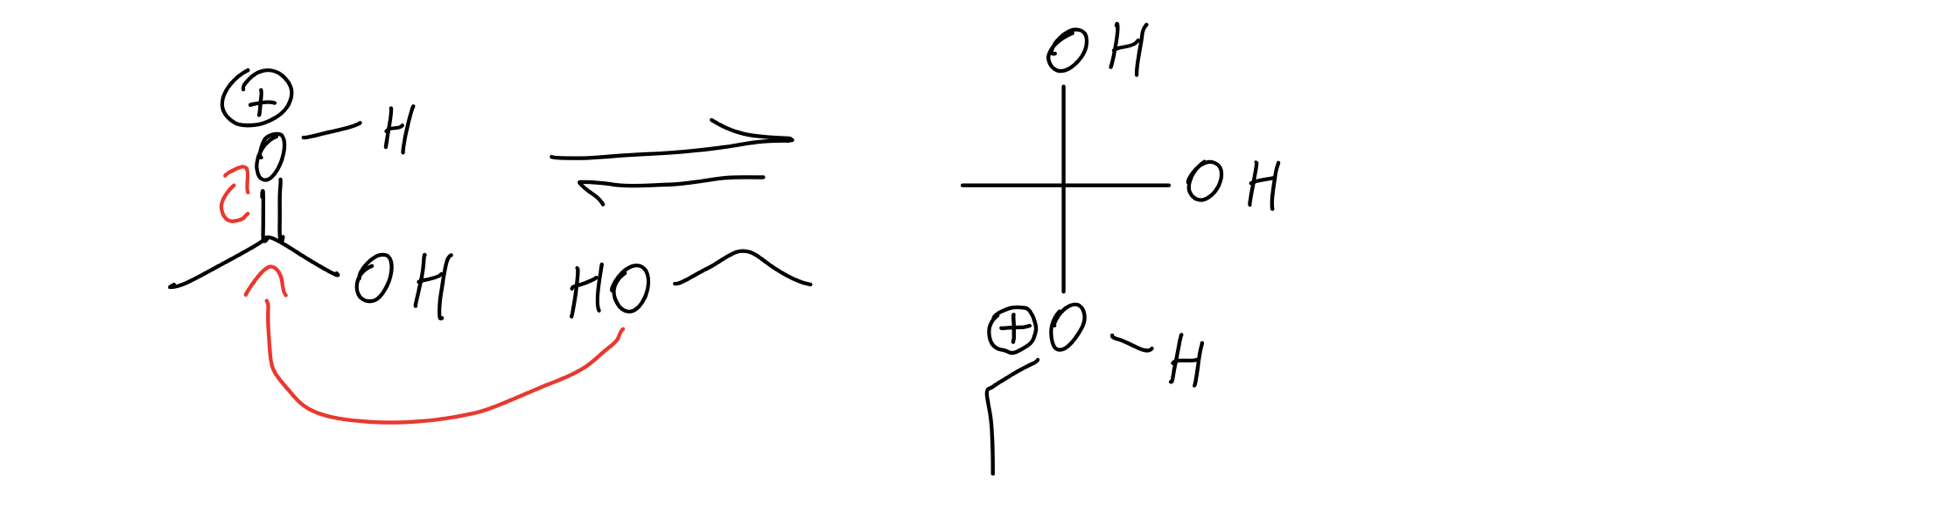 nucleophilic-attack